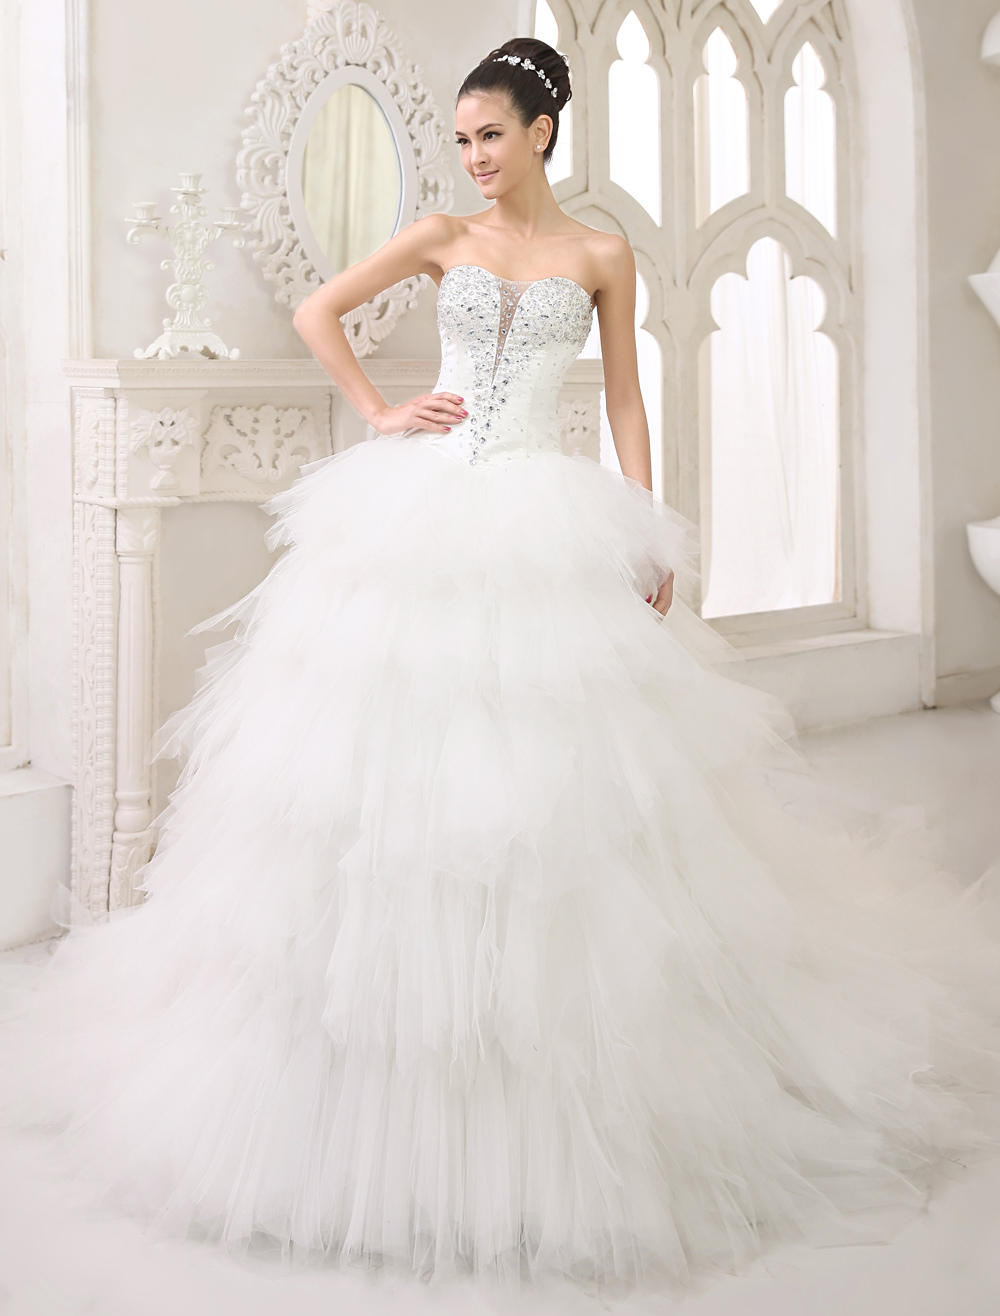 Buy Ivory Ball Gown Sweetheart Neck Strapless Tiered Chapel Train Tulle Wedding Dress For Bride Milanoo for $260.99 in Milanoo store